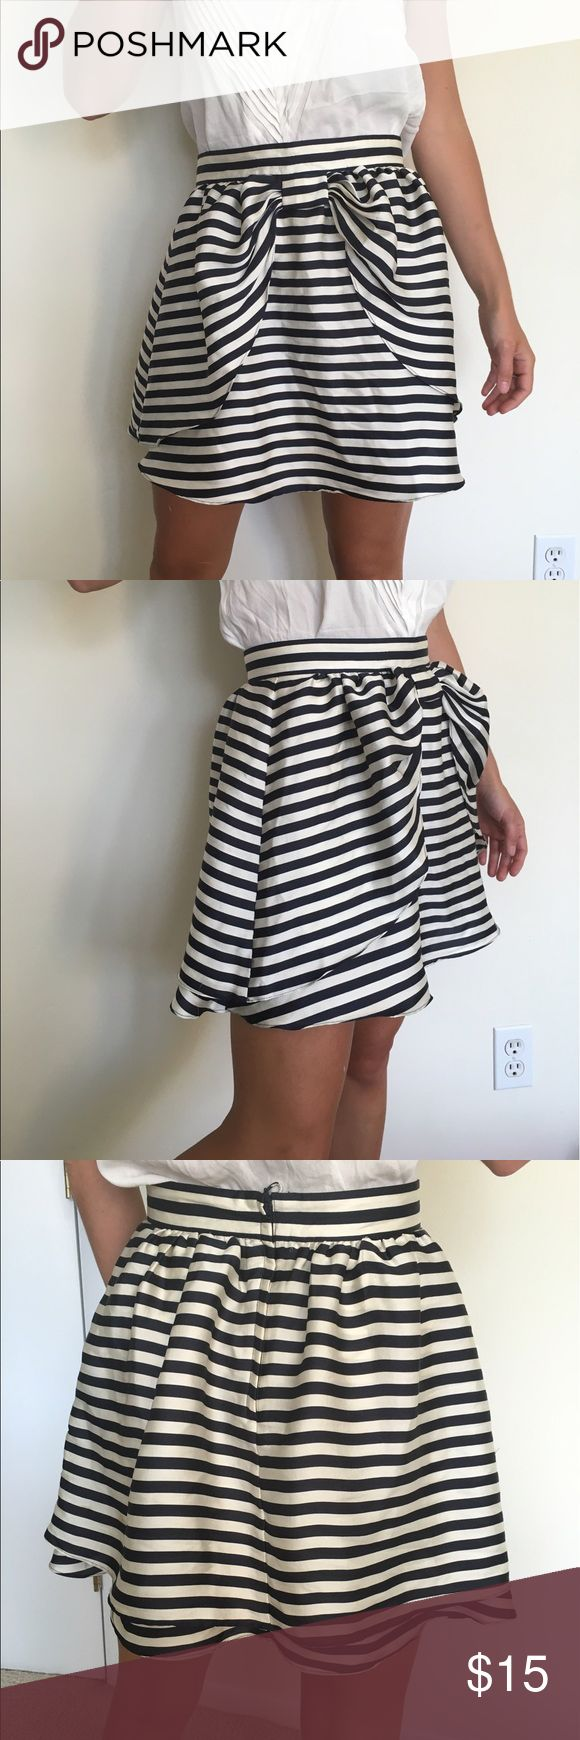 Cute H&M Striped Skirt Navy and Cream Size 2-4 This is an awesome skirt that I've had for a few years and always looks really cute. It is a size 6 but since this is H&M it is more like a US size 2-4. I am 5ft 4 and 118 pounds and this skirt fits well. H&M Skirts Circle & Skater